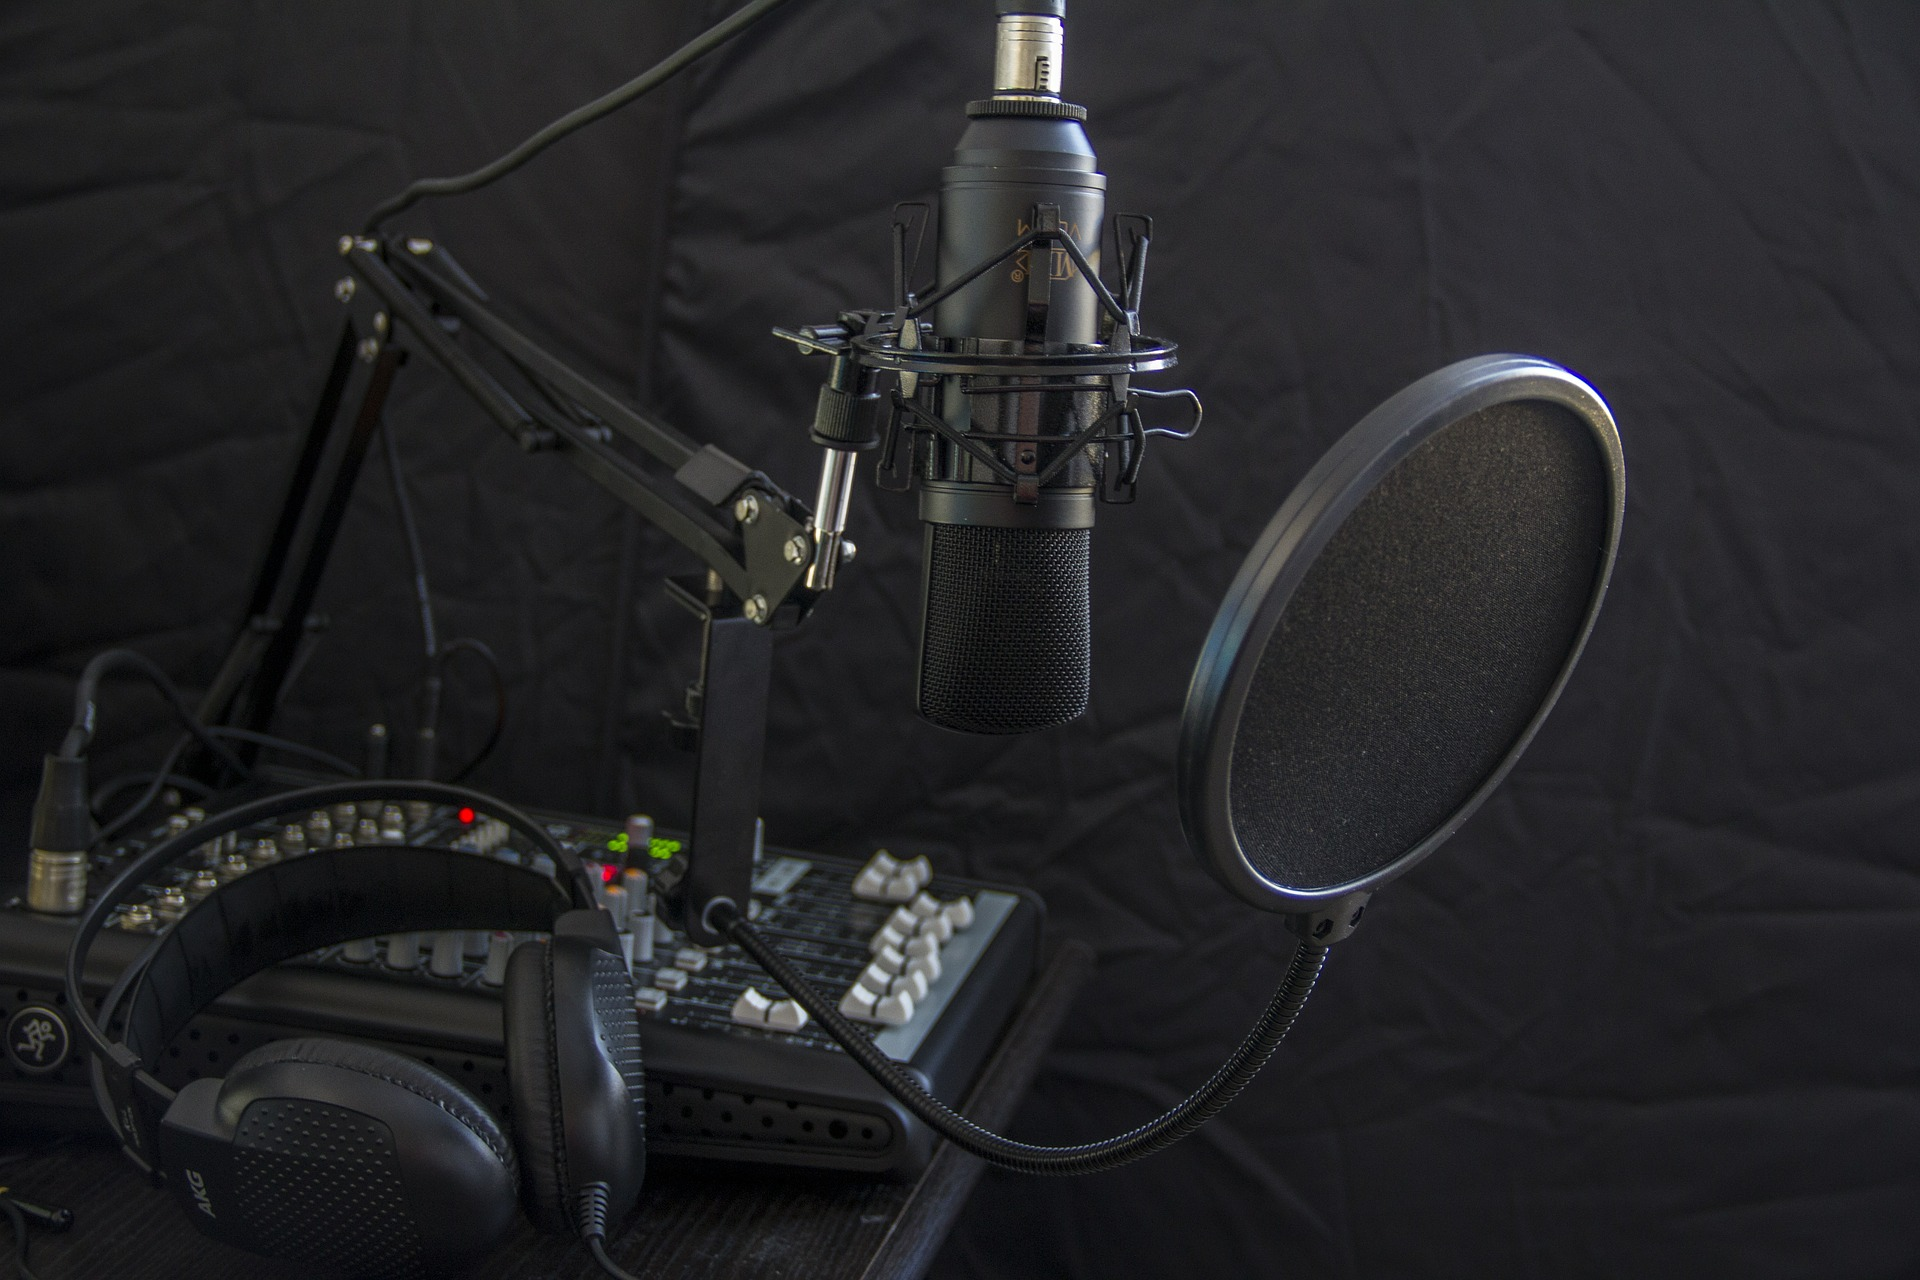 microphone-616788_1920